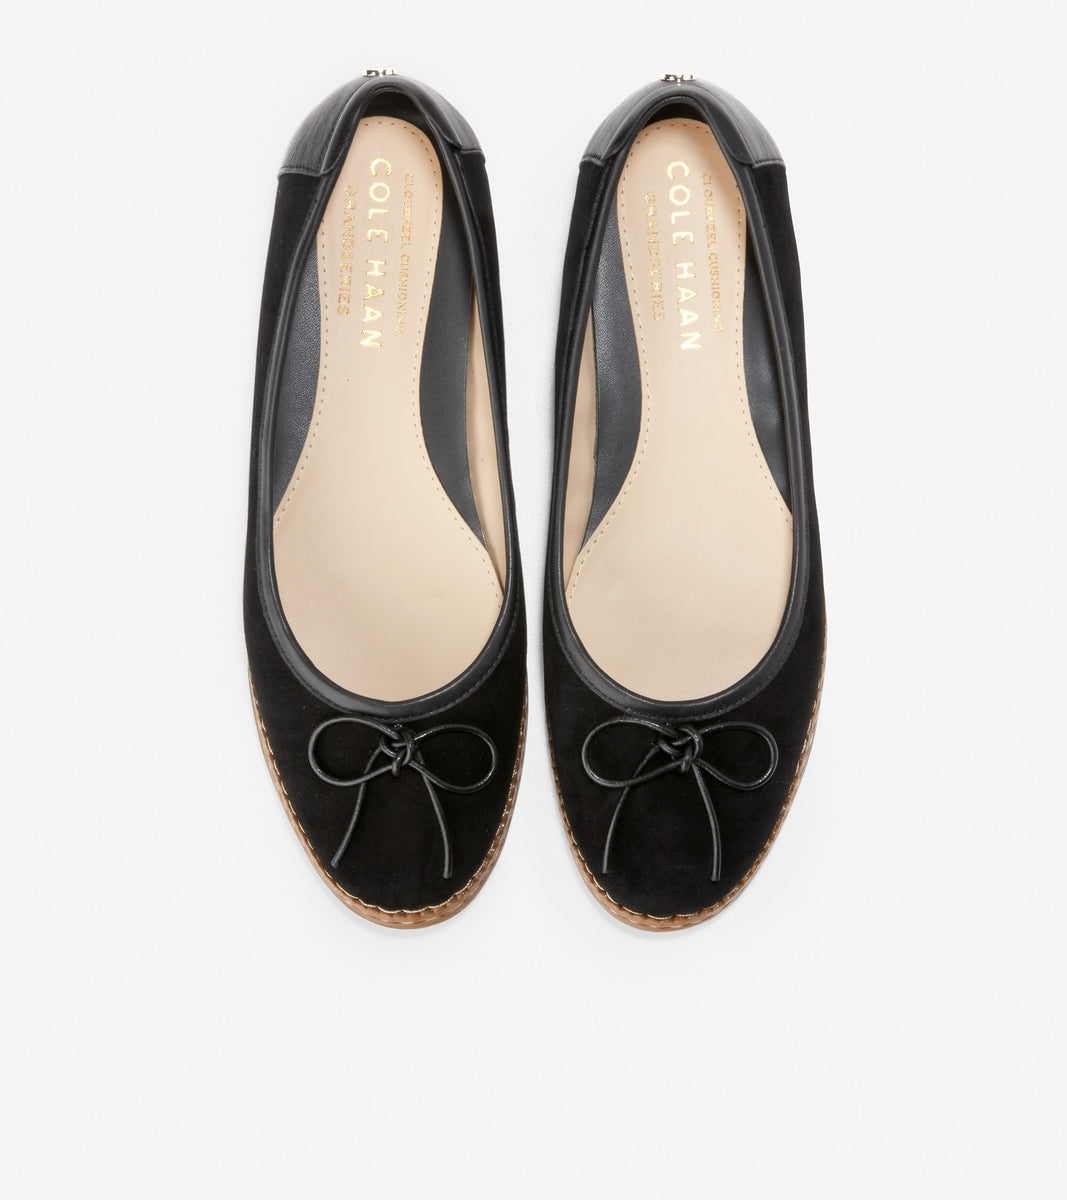 Cloudfeel All-Day Ballet Flat